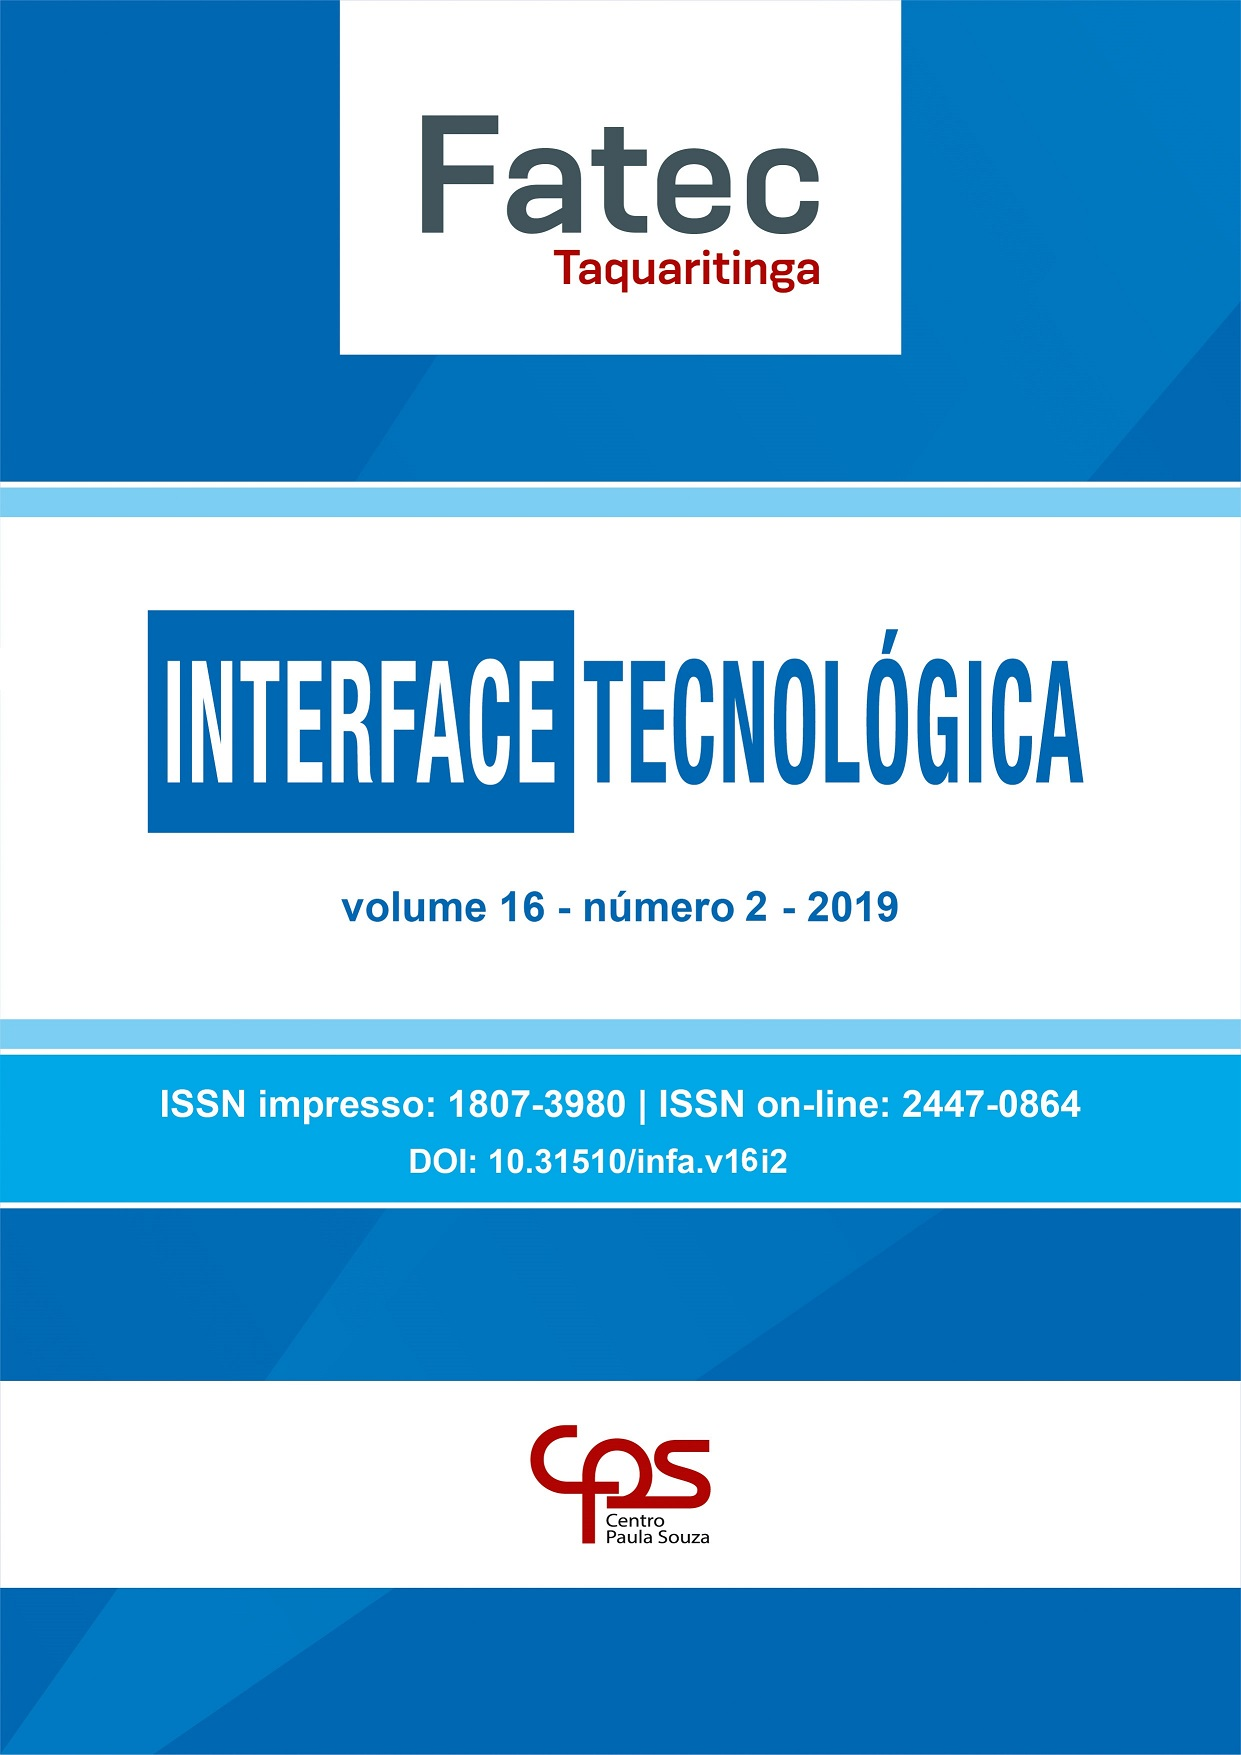 Visualizar v. 16 n. 2 (2019): Revista Interface Tecnológica